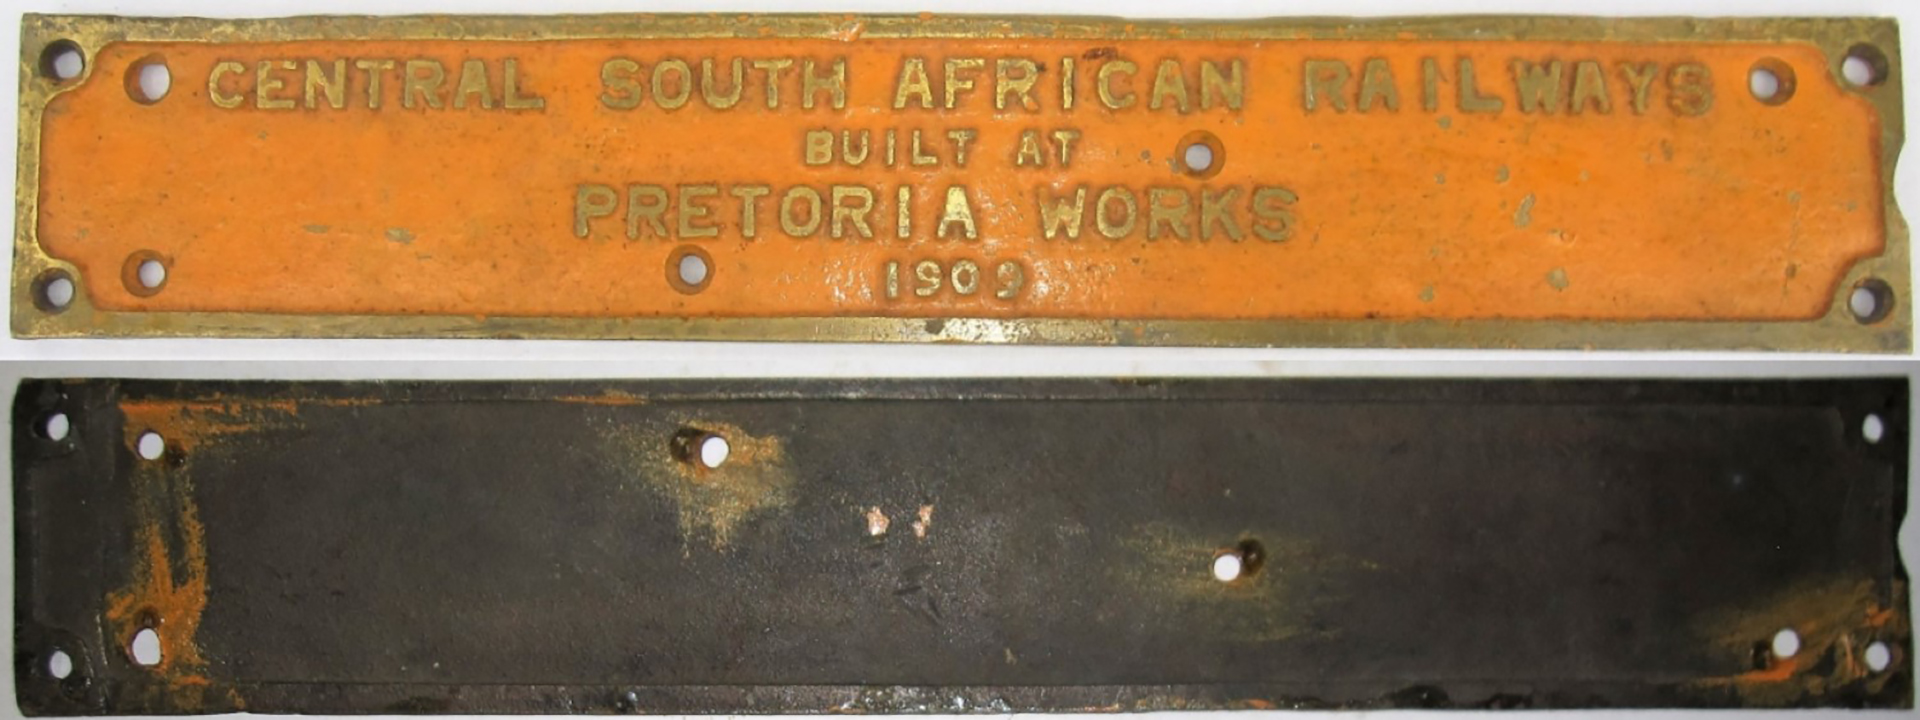 Central South African Railways brass works plate. BUILT AT PRETORIA WORKS 1909. Original condition.